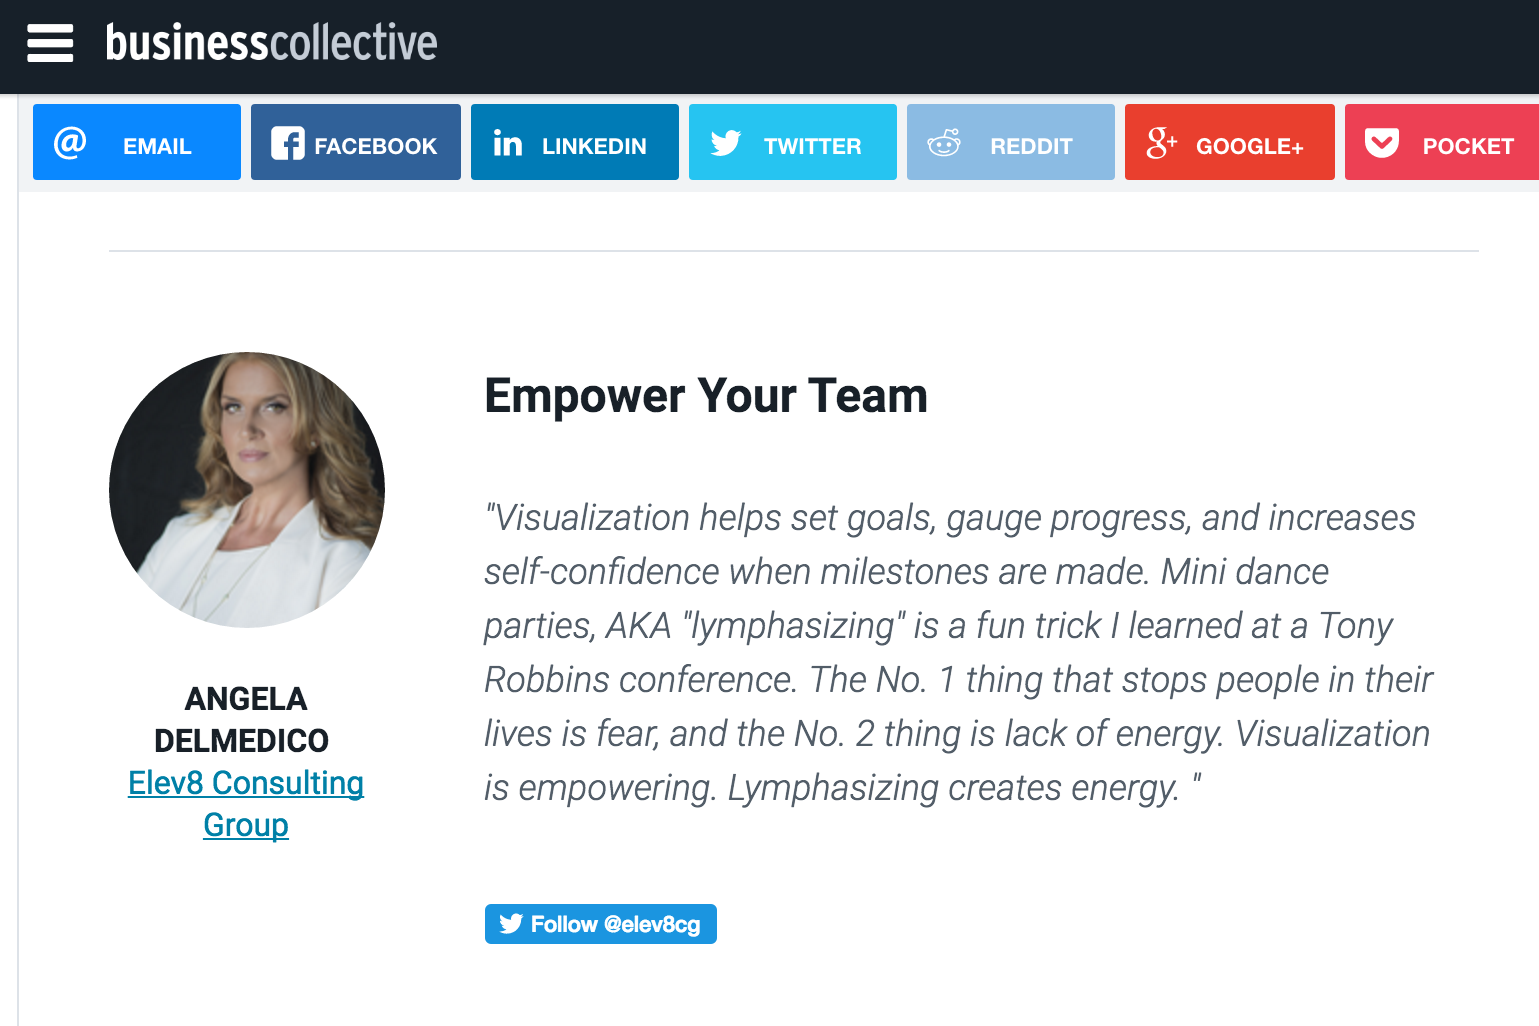 Angela Delmedico Elev8 Consulting Group The Business Collective